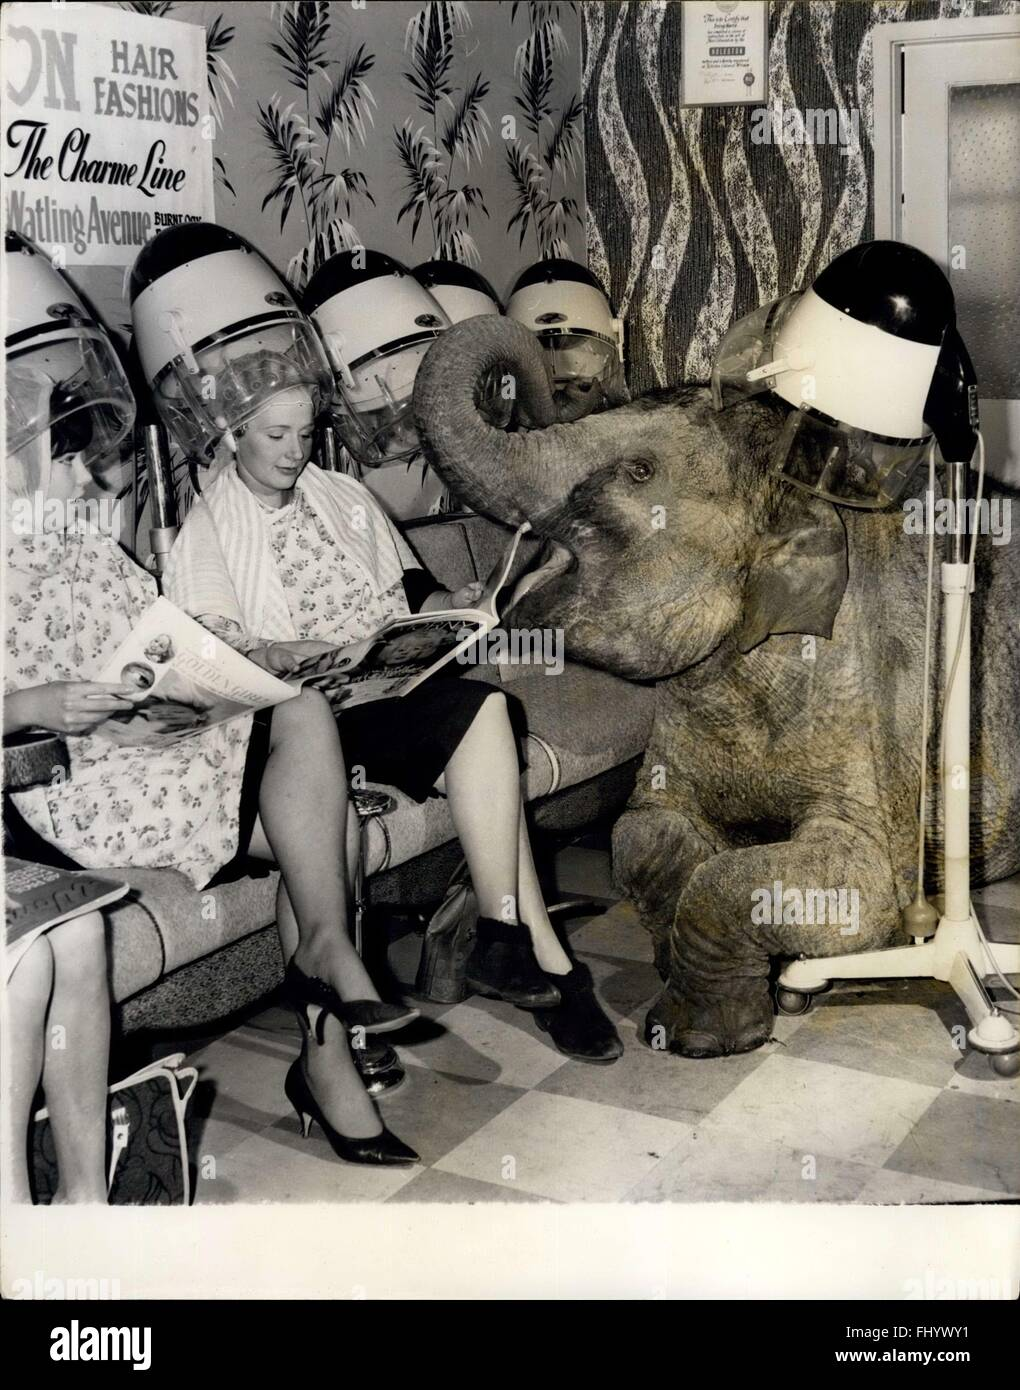 1956 - The Coiffeur-Conscious Pachyderm: Enough to make any coiffeur's client's hair curl without his intervention - Stock Image